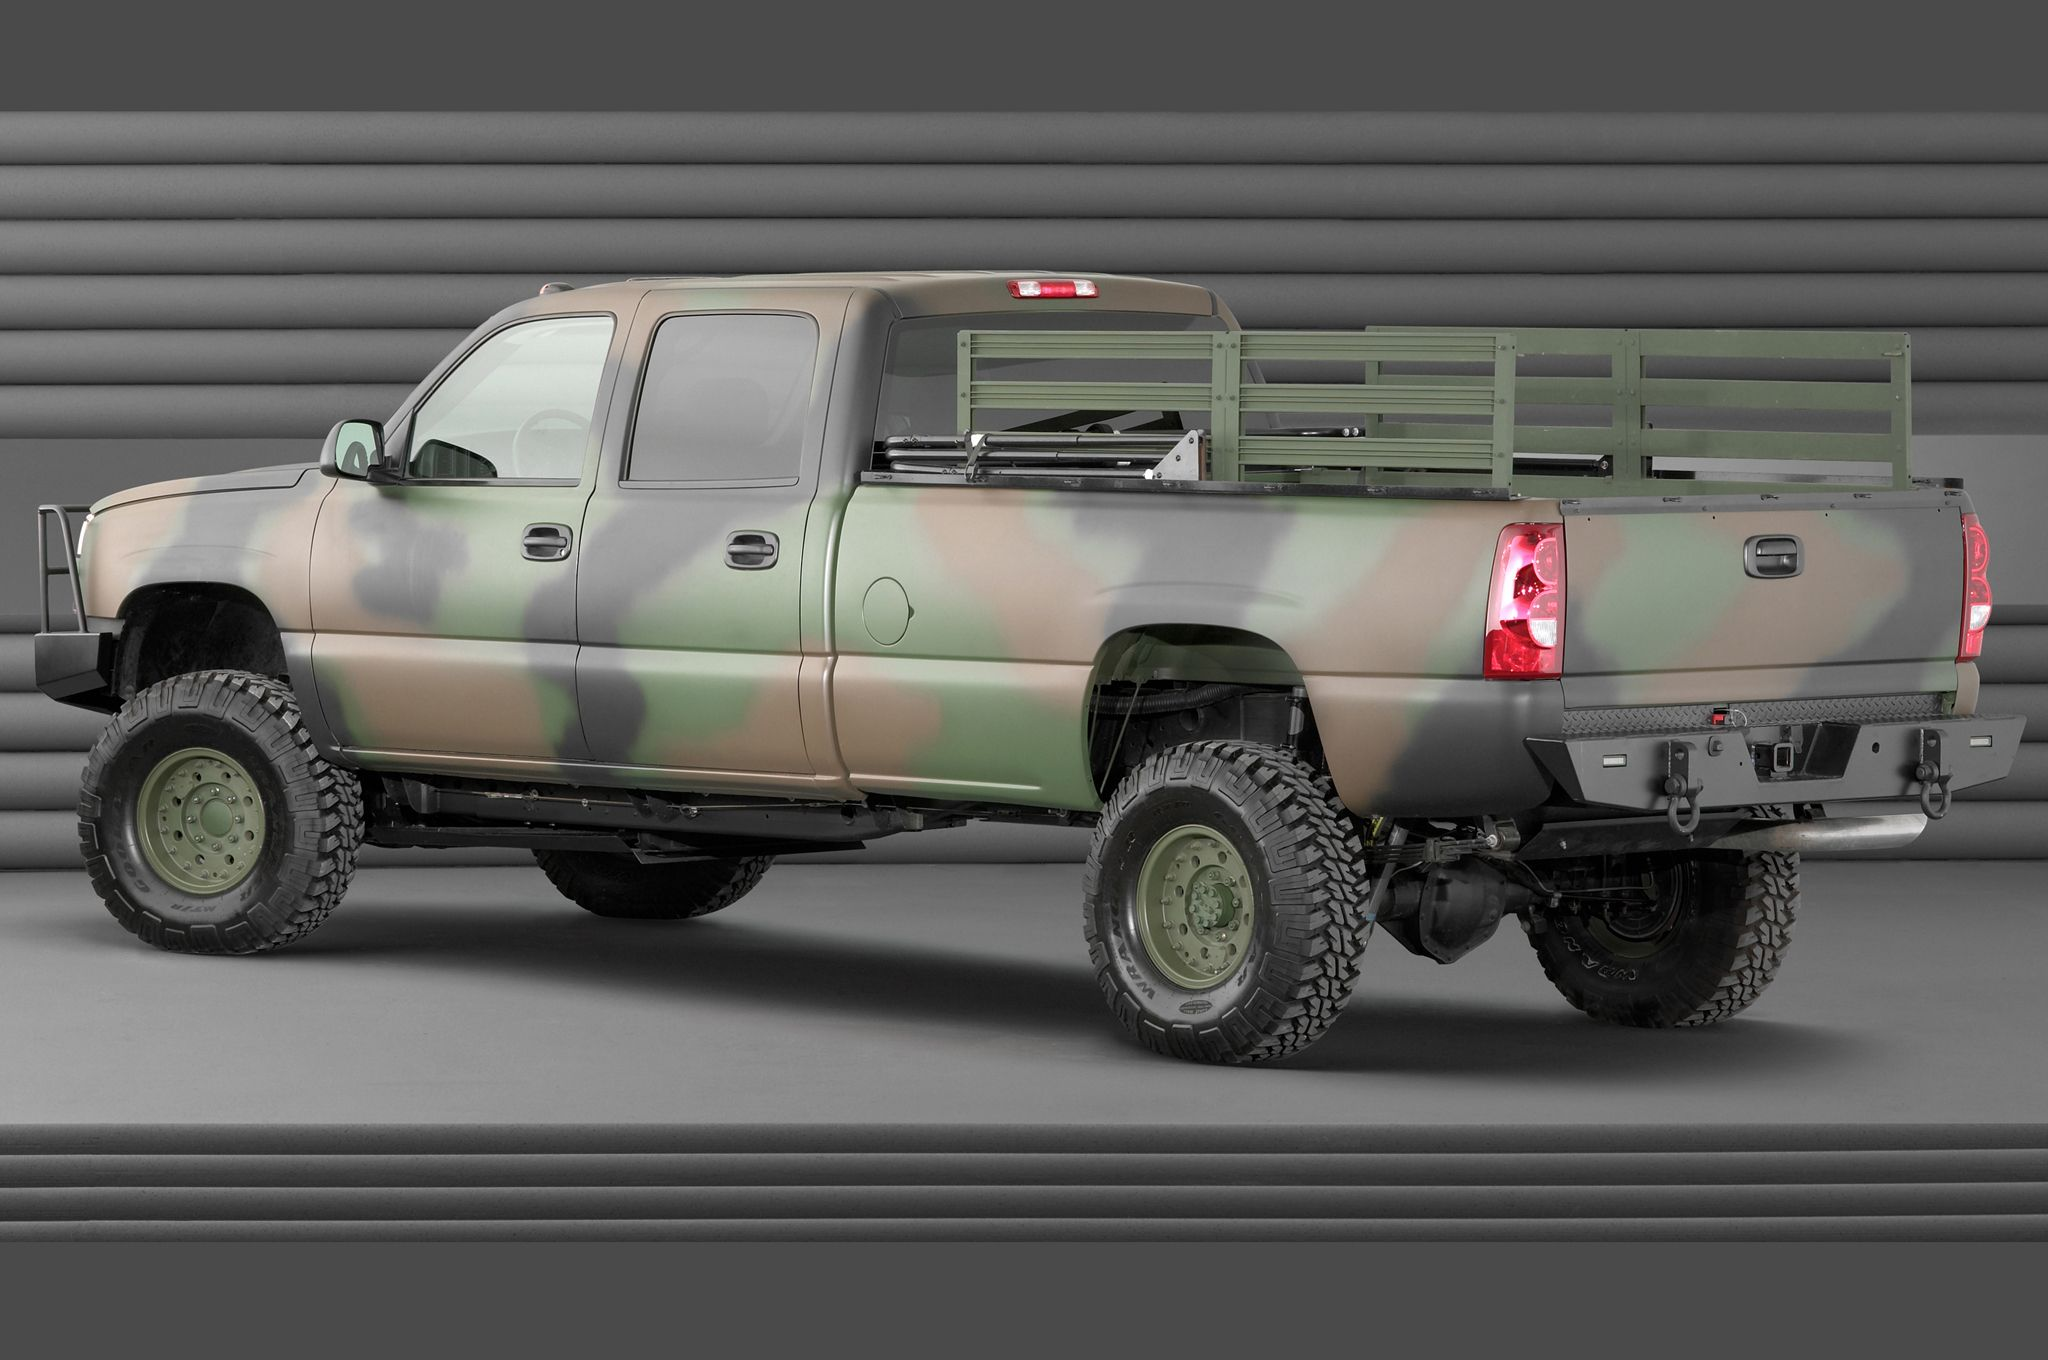 2019 Chevrolet Silverado Hydrogen Military Vehicle photo - 3